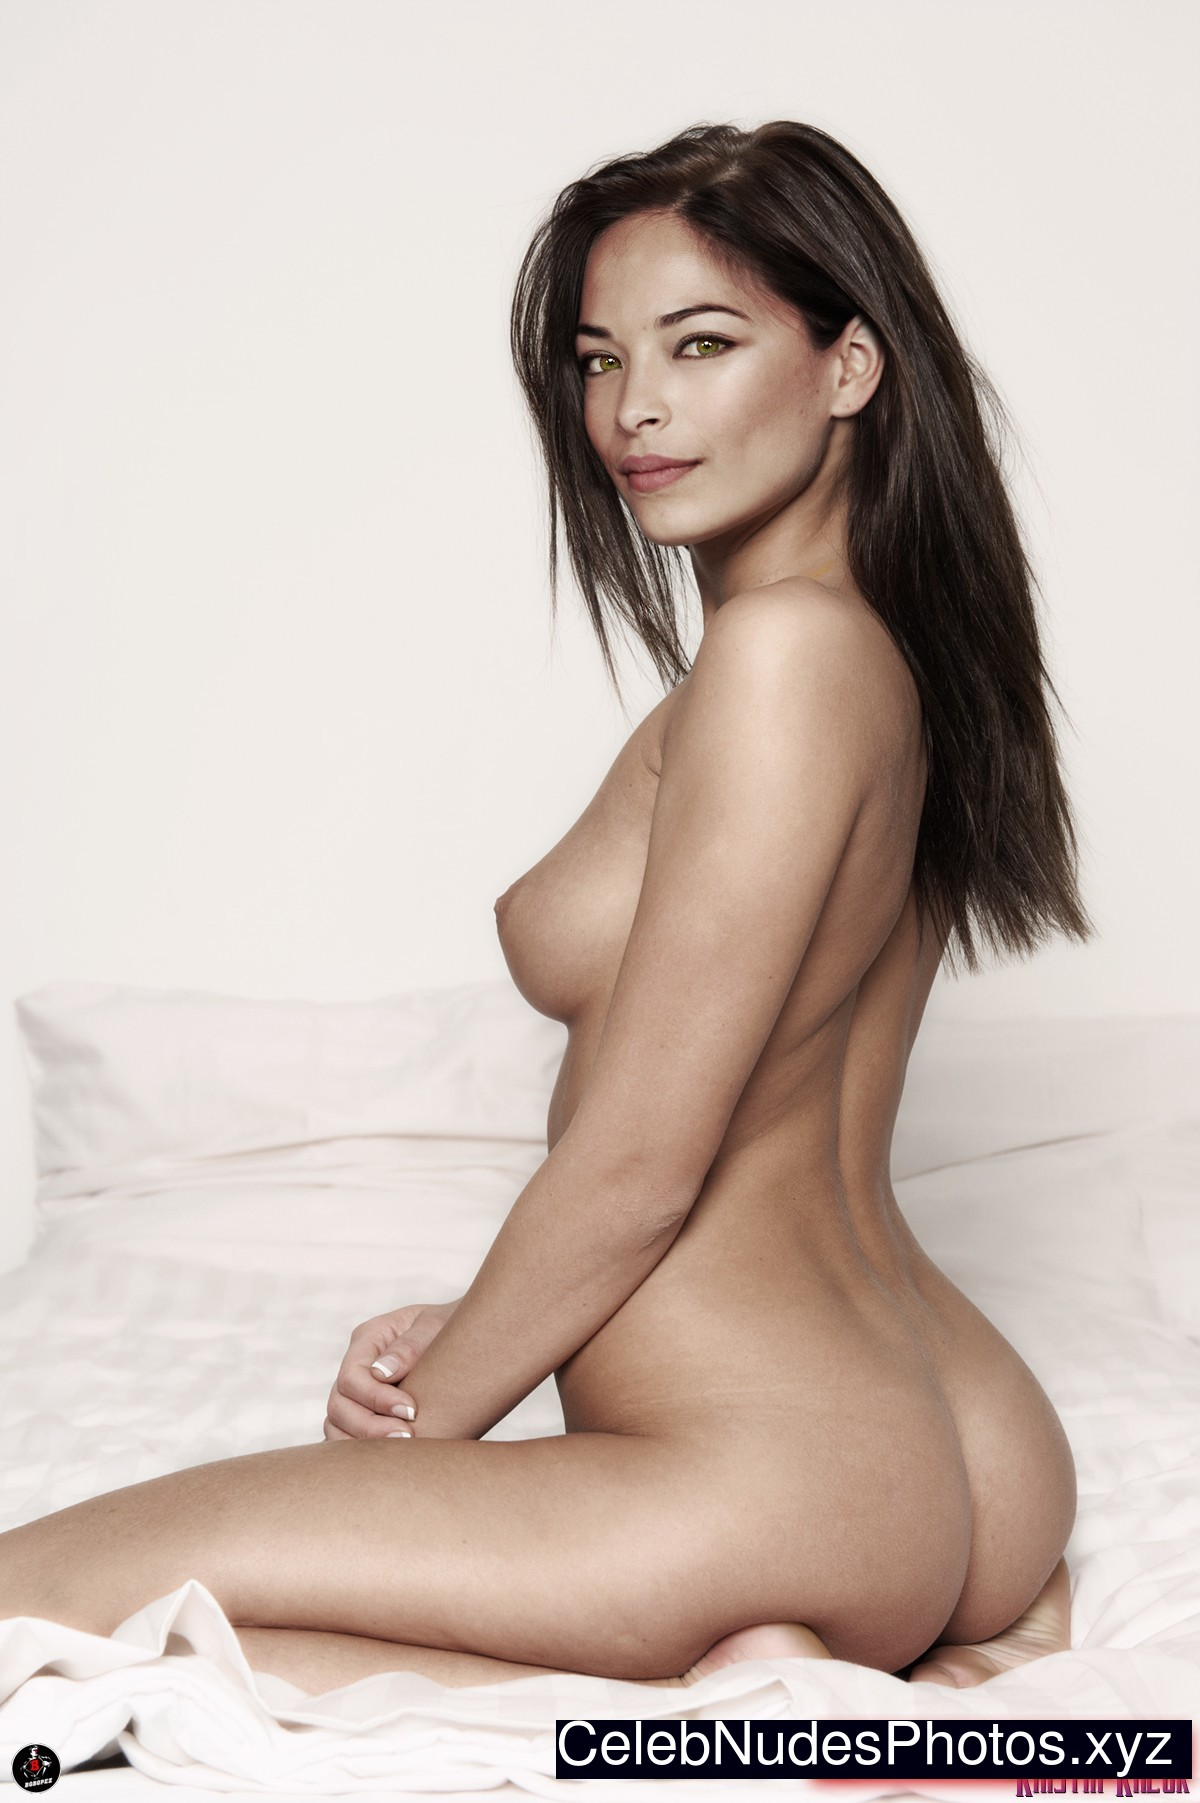 Kristin Kreuk celebrities nude